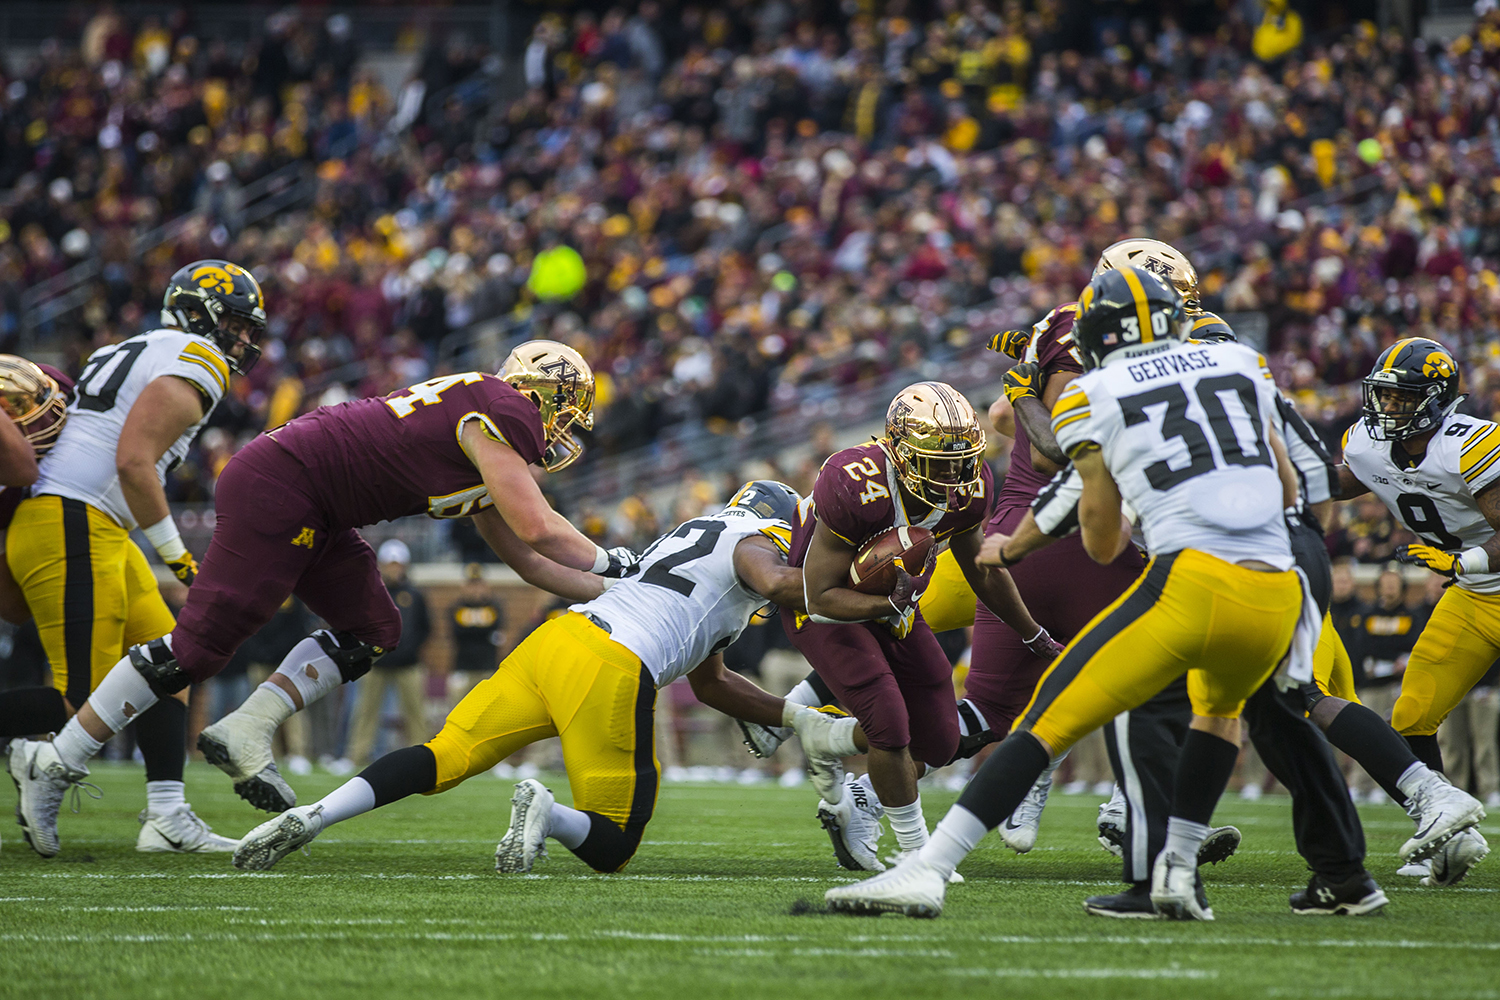 Minnesota%27s+Mohamed+Ibrahim+%2824%29+runs+the+ball+during+the+Iowa%2FMinnesota+football+game+at+TCF+Bank+Stadium+in+Minneapolis+on+Saturday%2C+October+6%2C+2018.+The+Hawkeyes+defeated+the+Golden+Gophers%2C+48-31.+